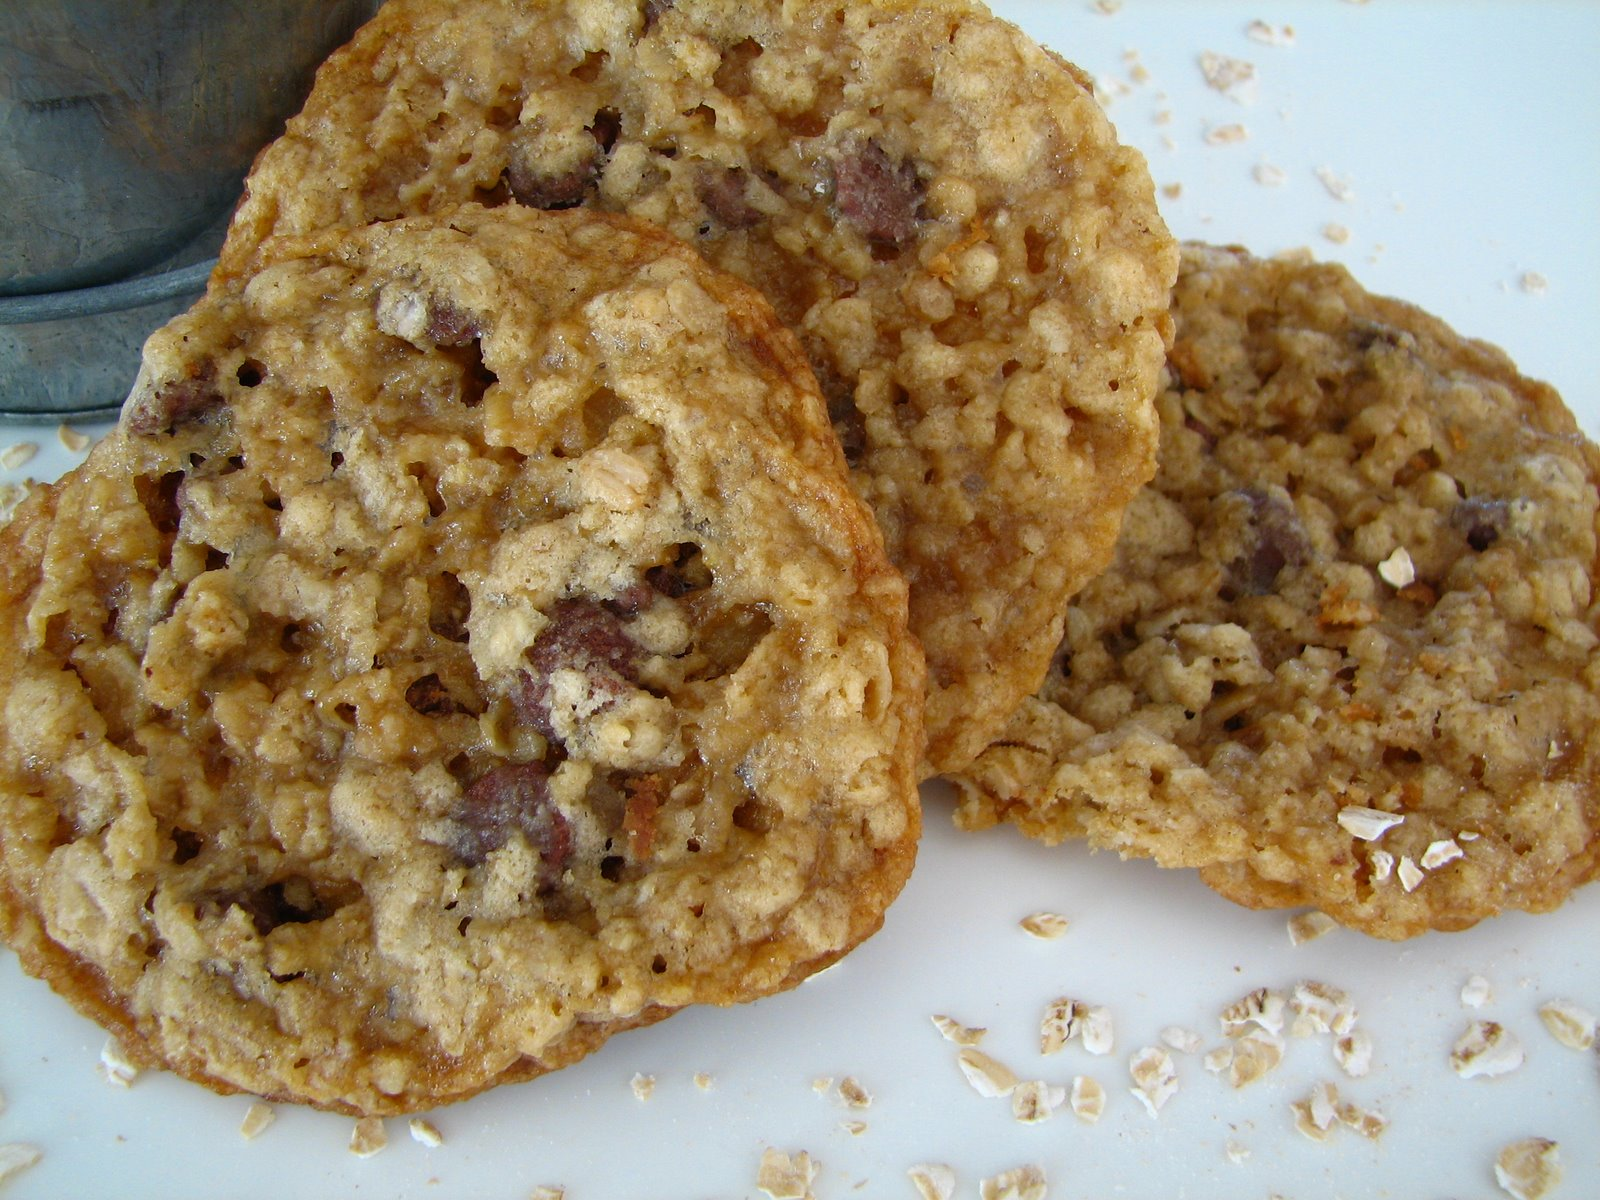 Wendy's Food Files: Crispy, Chewy Oatmeal Cookies